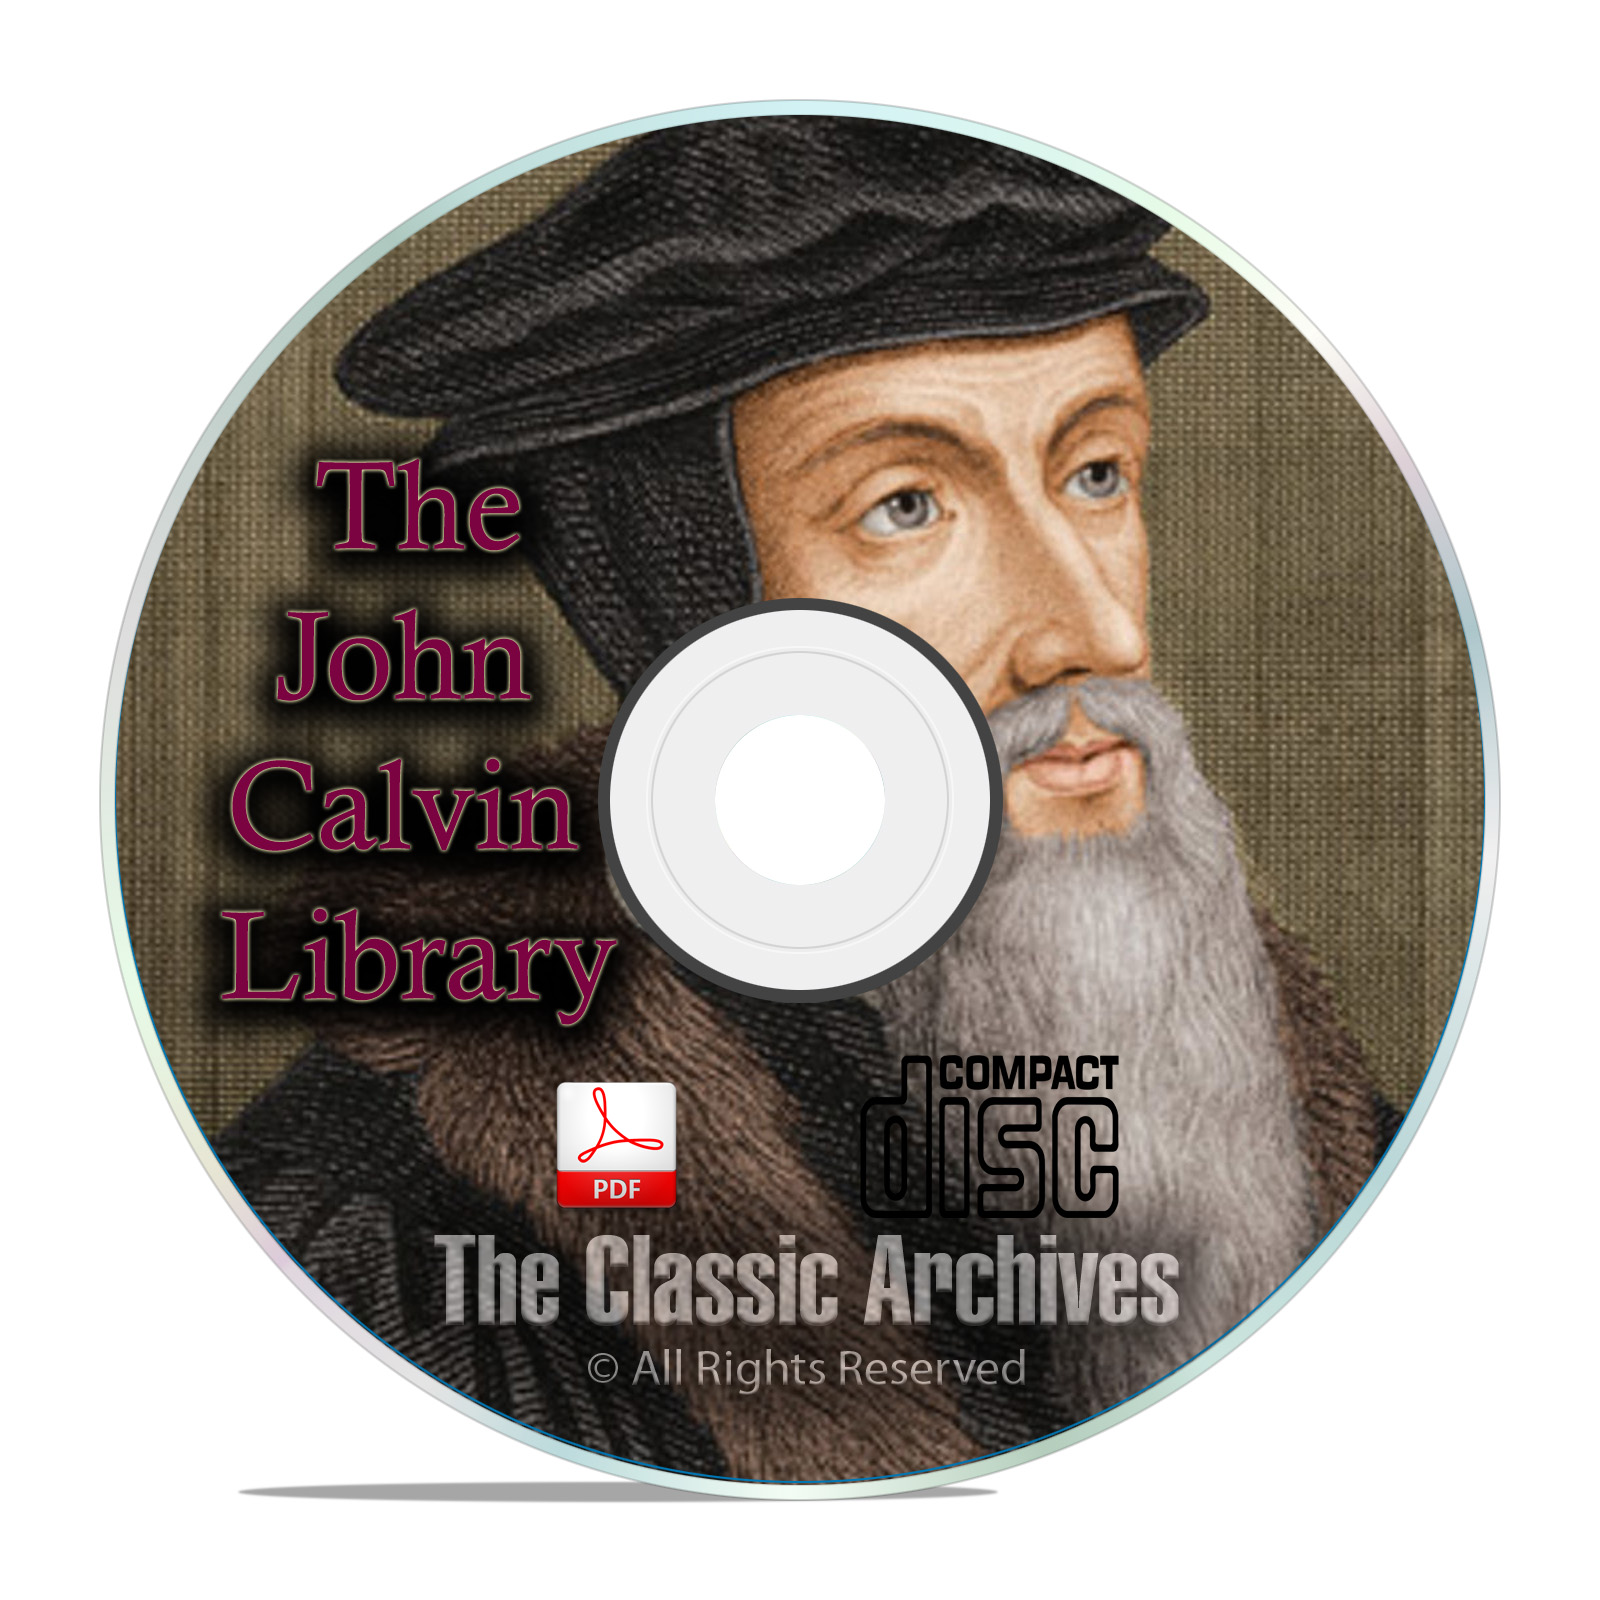 Complete Works of John Calvin Bible Commentary, 64 books Christian Study CD - Click Image to Close